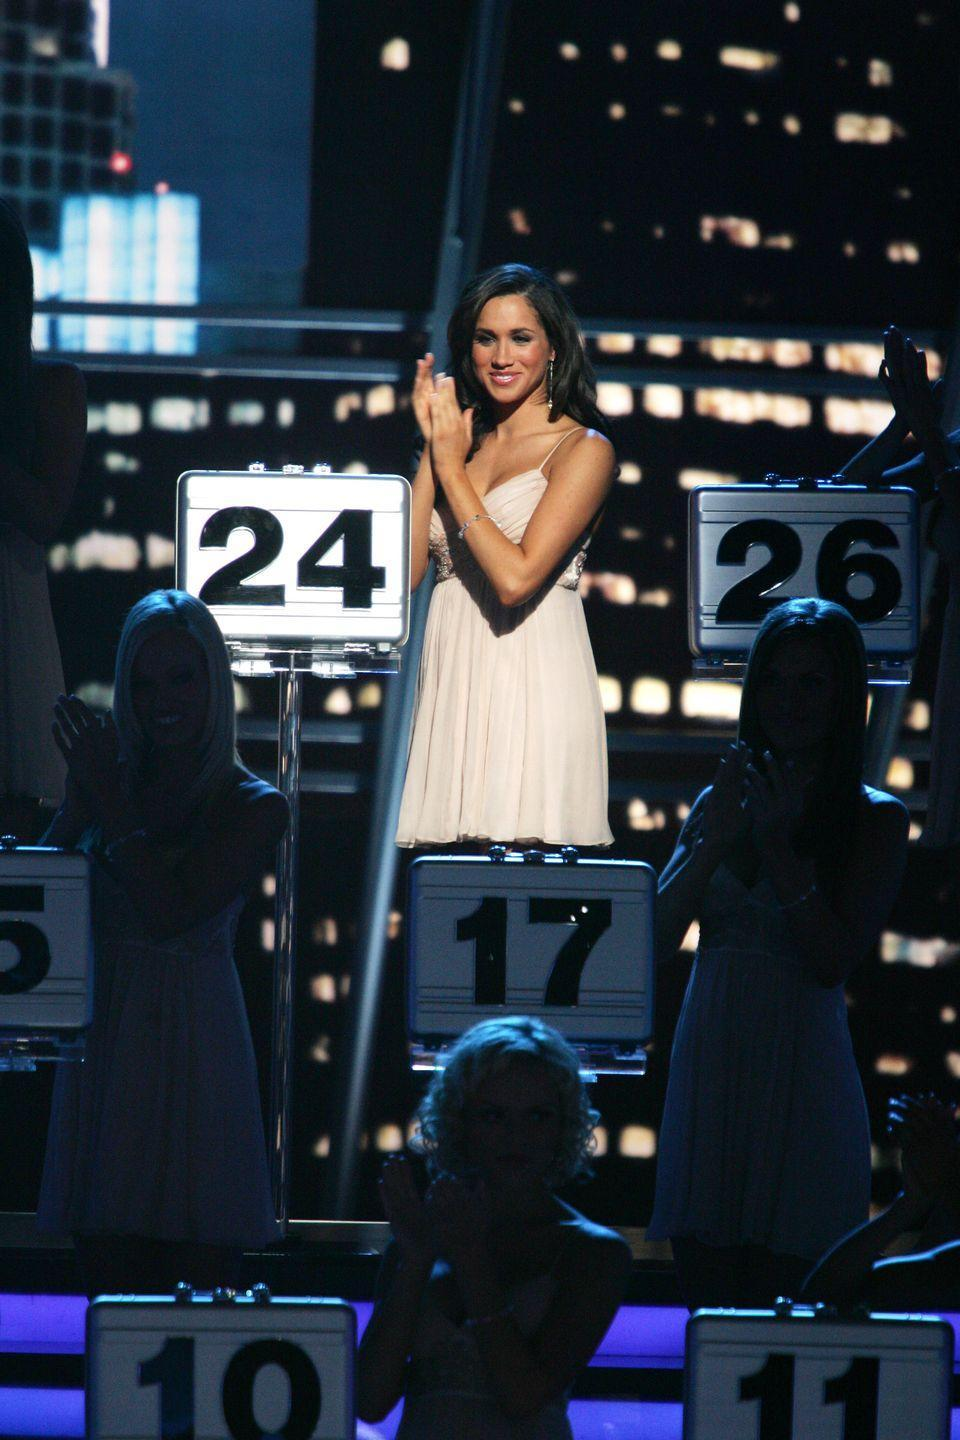 <p>Meghan Markle worked as one of the briefcase models on the popular American game show <em>Deal or No Deal</em>.</p>